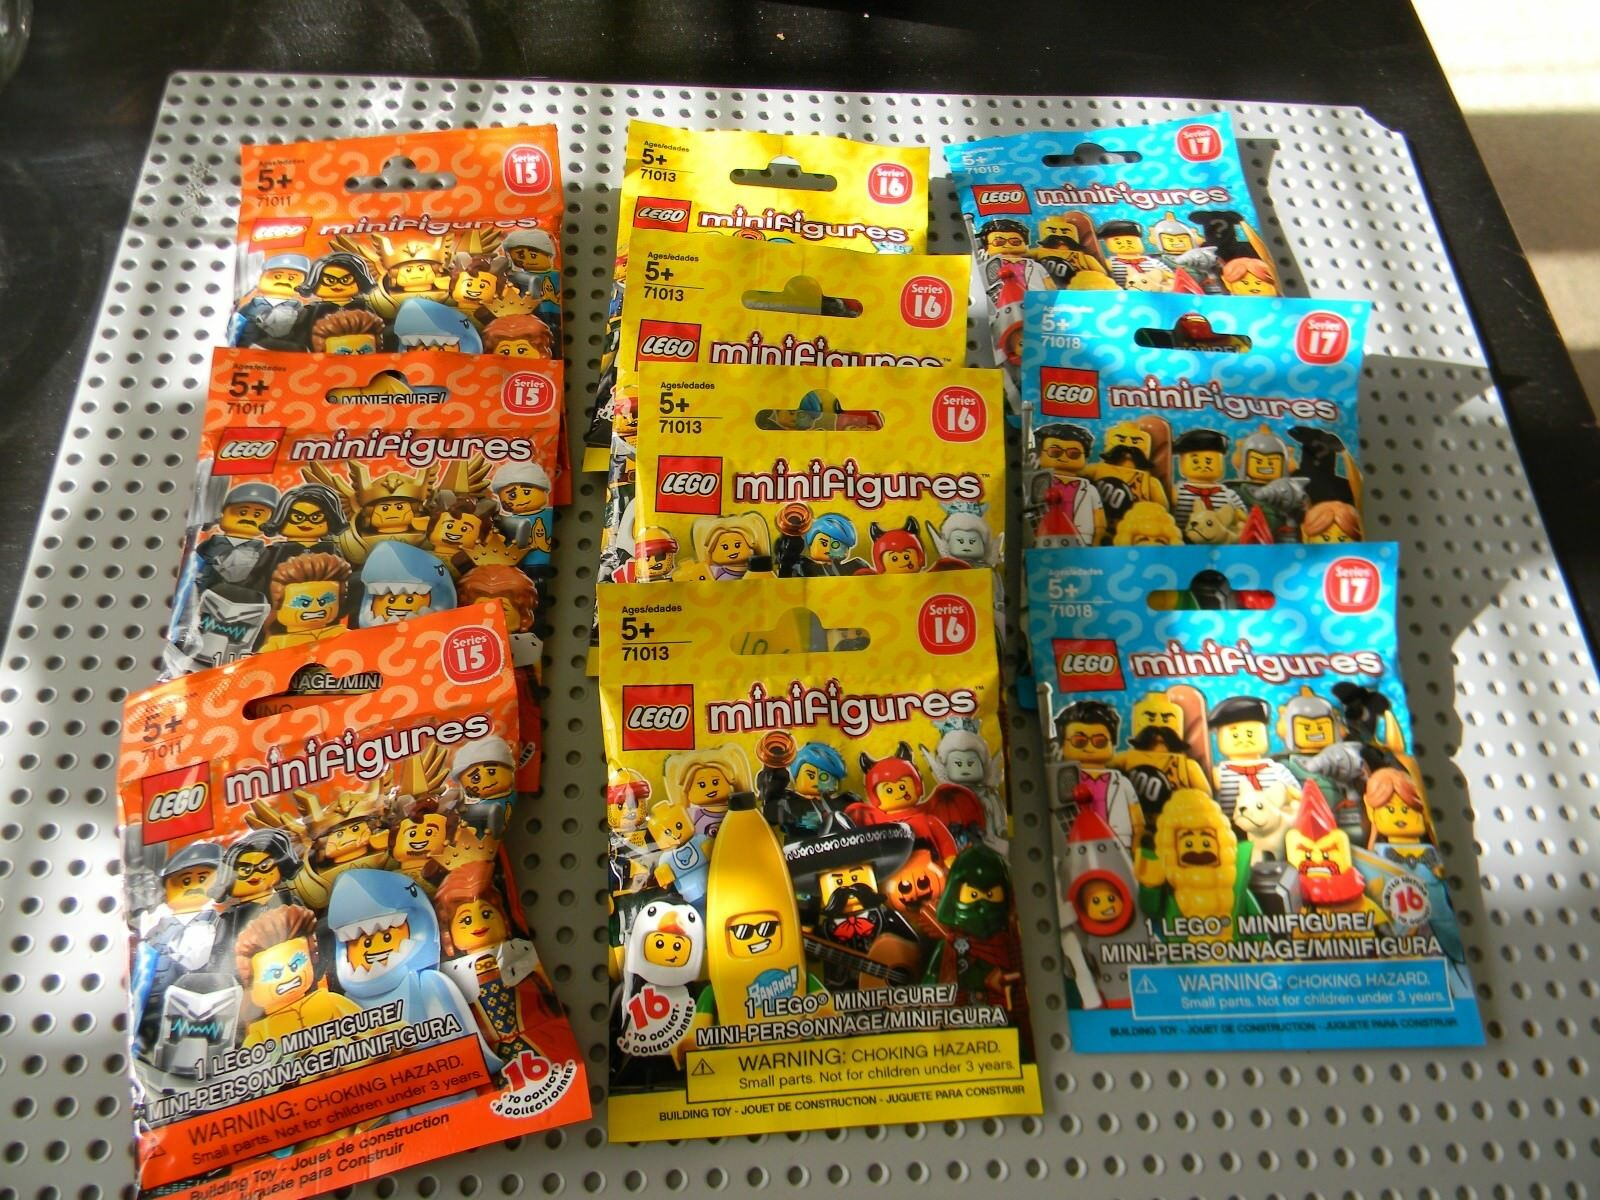 Lego - 10 Unopened Collectable Minifigures - Series 15, 16, 17 - New